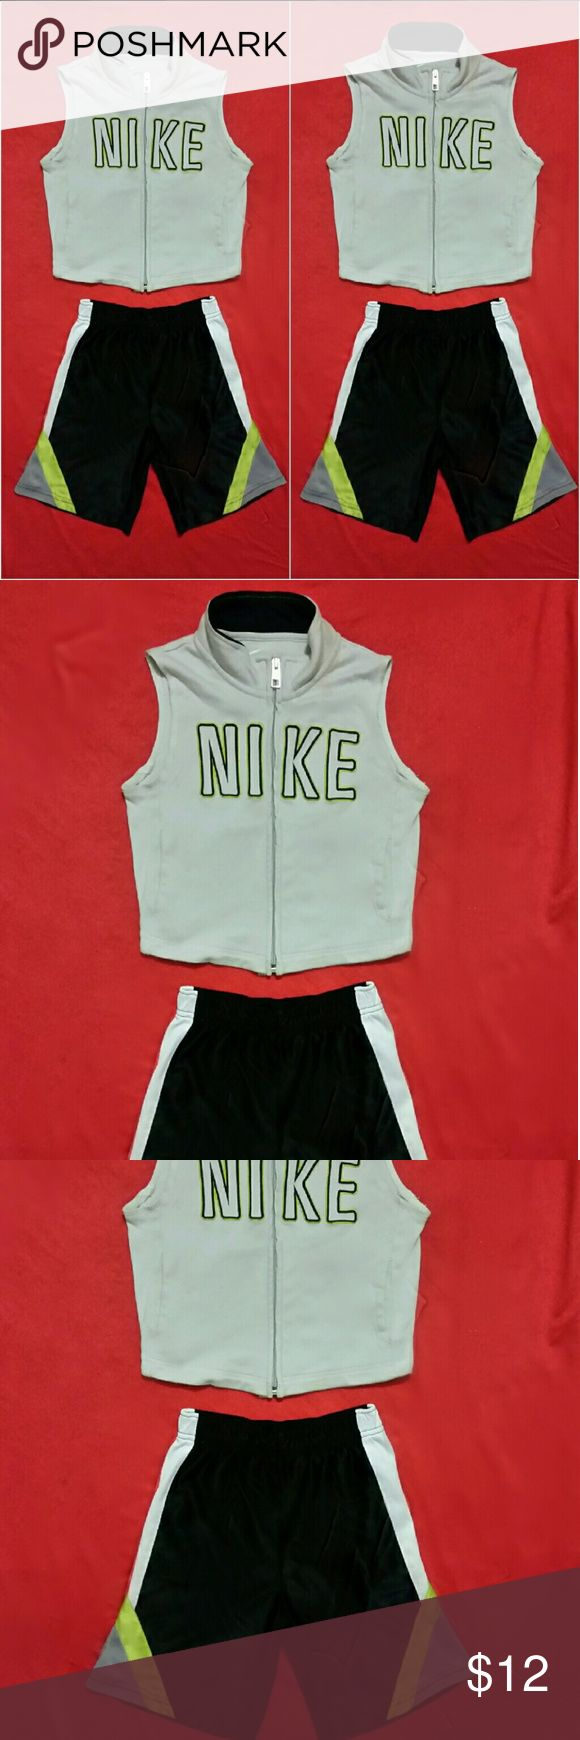 """2"" Pieces Boy (Toddler) Nike vest & Elastic Pants NIKE VEST SIZE: 3T & Elastic Pants size: 5T *USED Clean & Great Conditions! Nike Matching Sets"